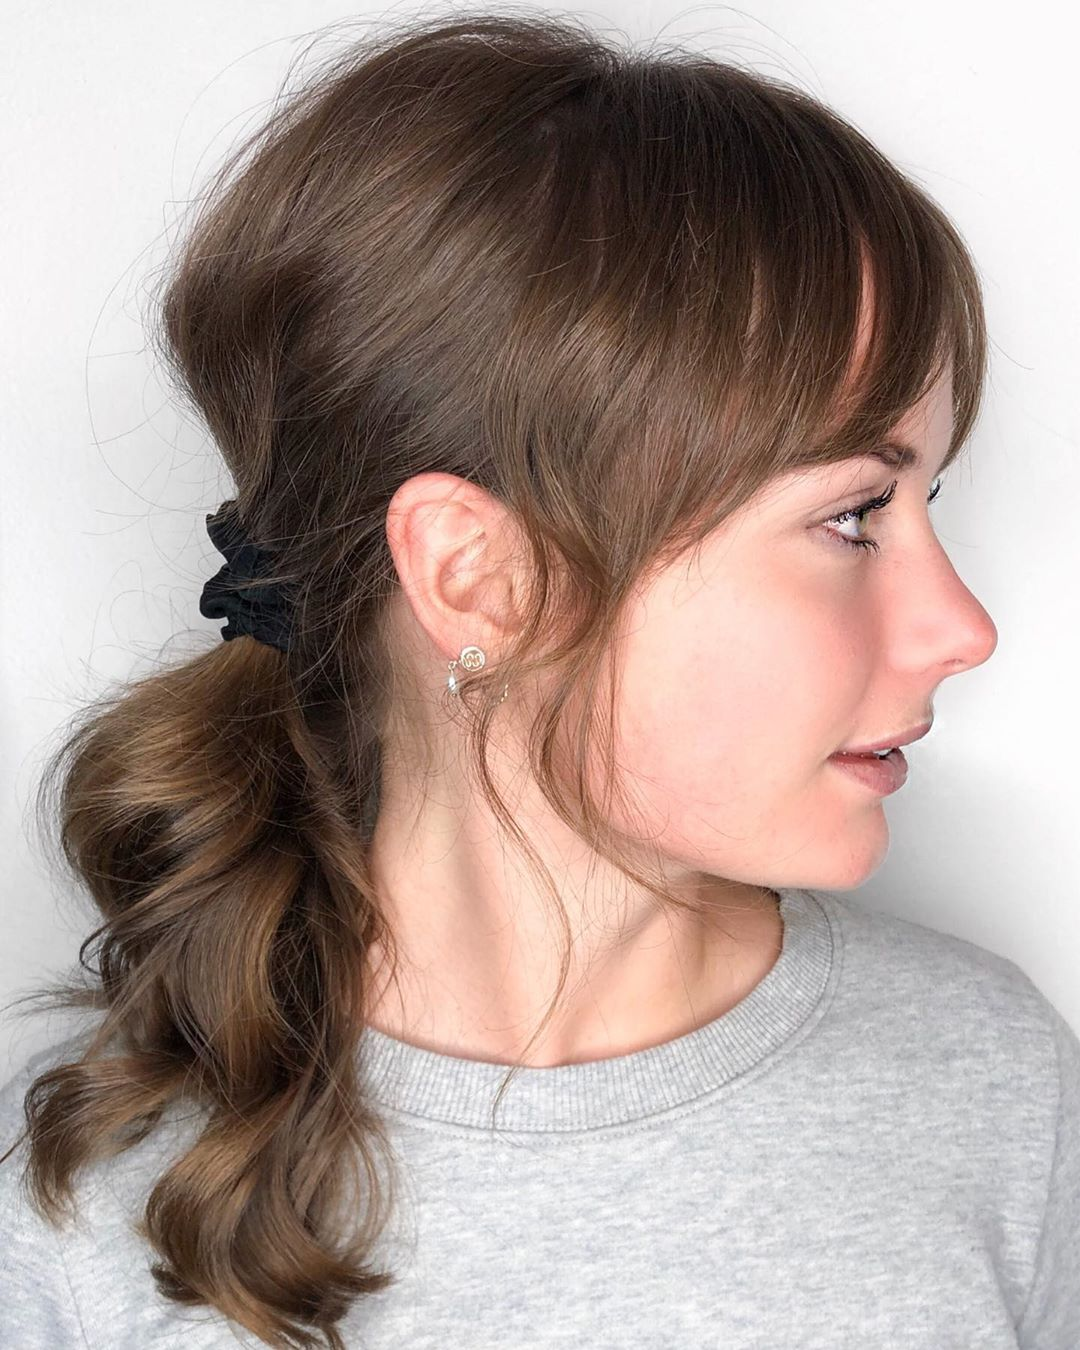 Low Ponytail for Fine Curly Hair